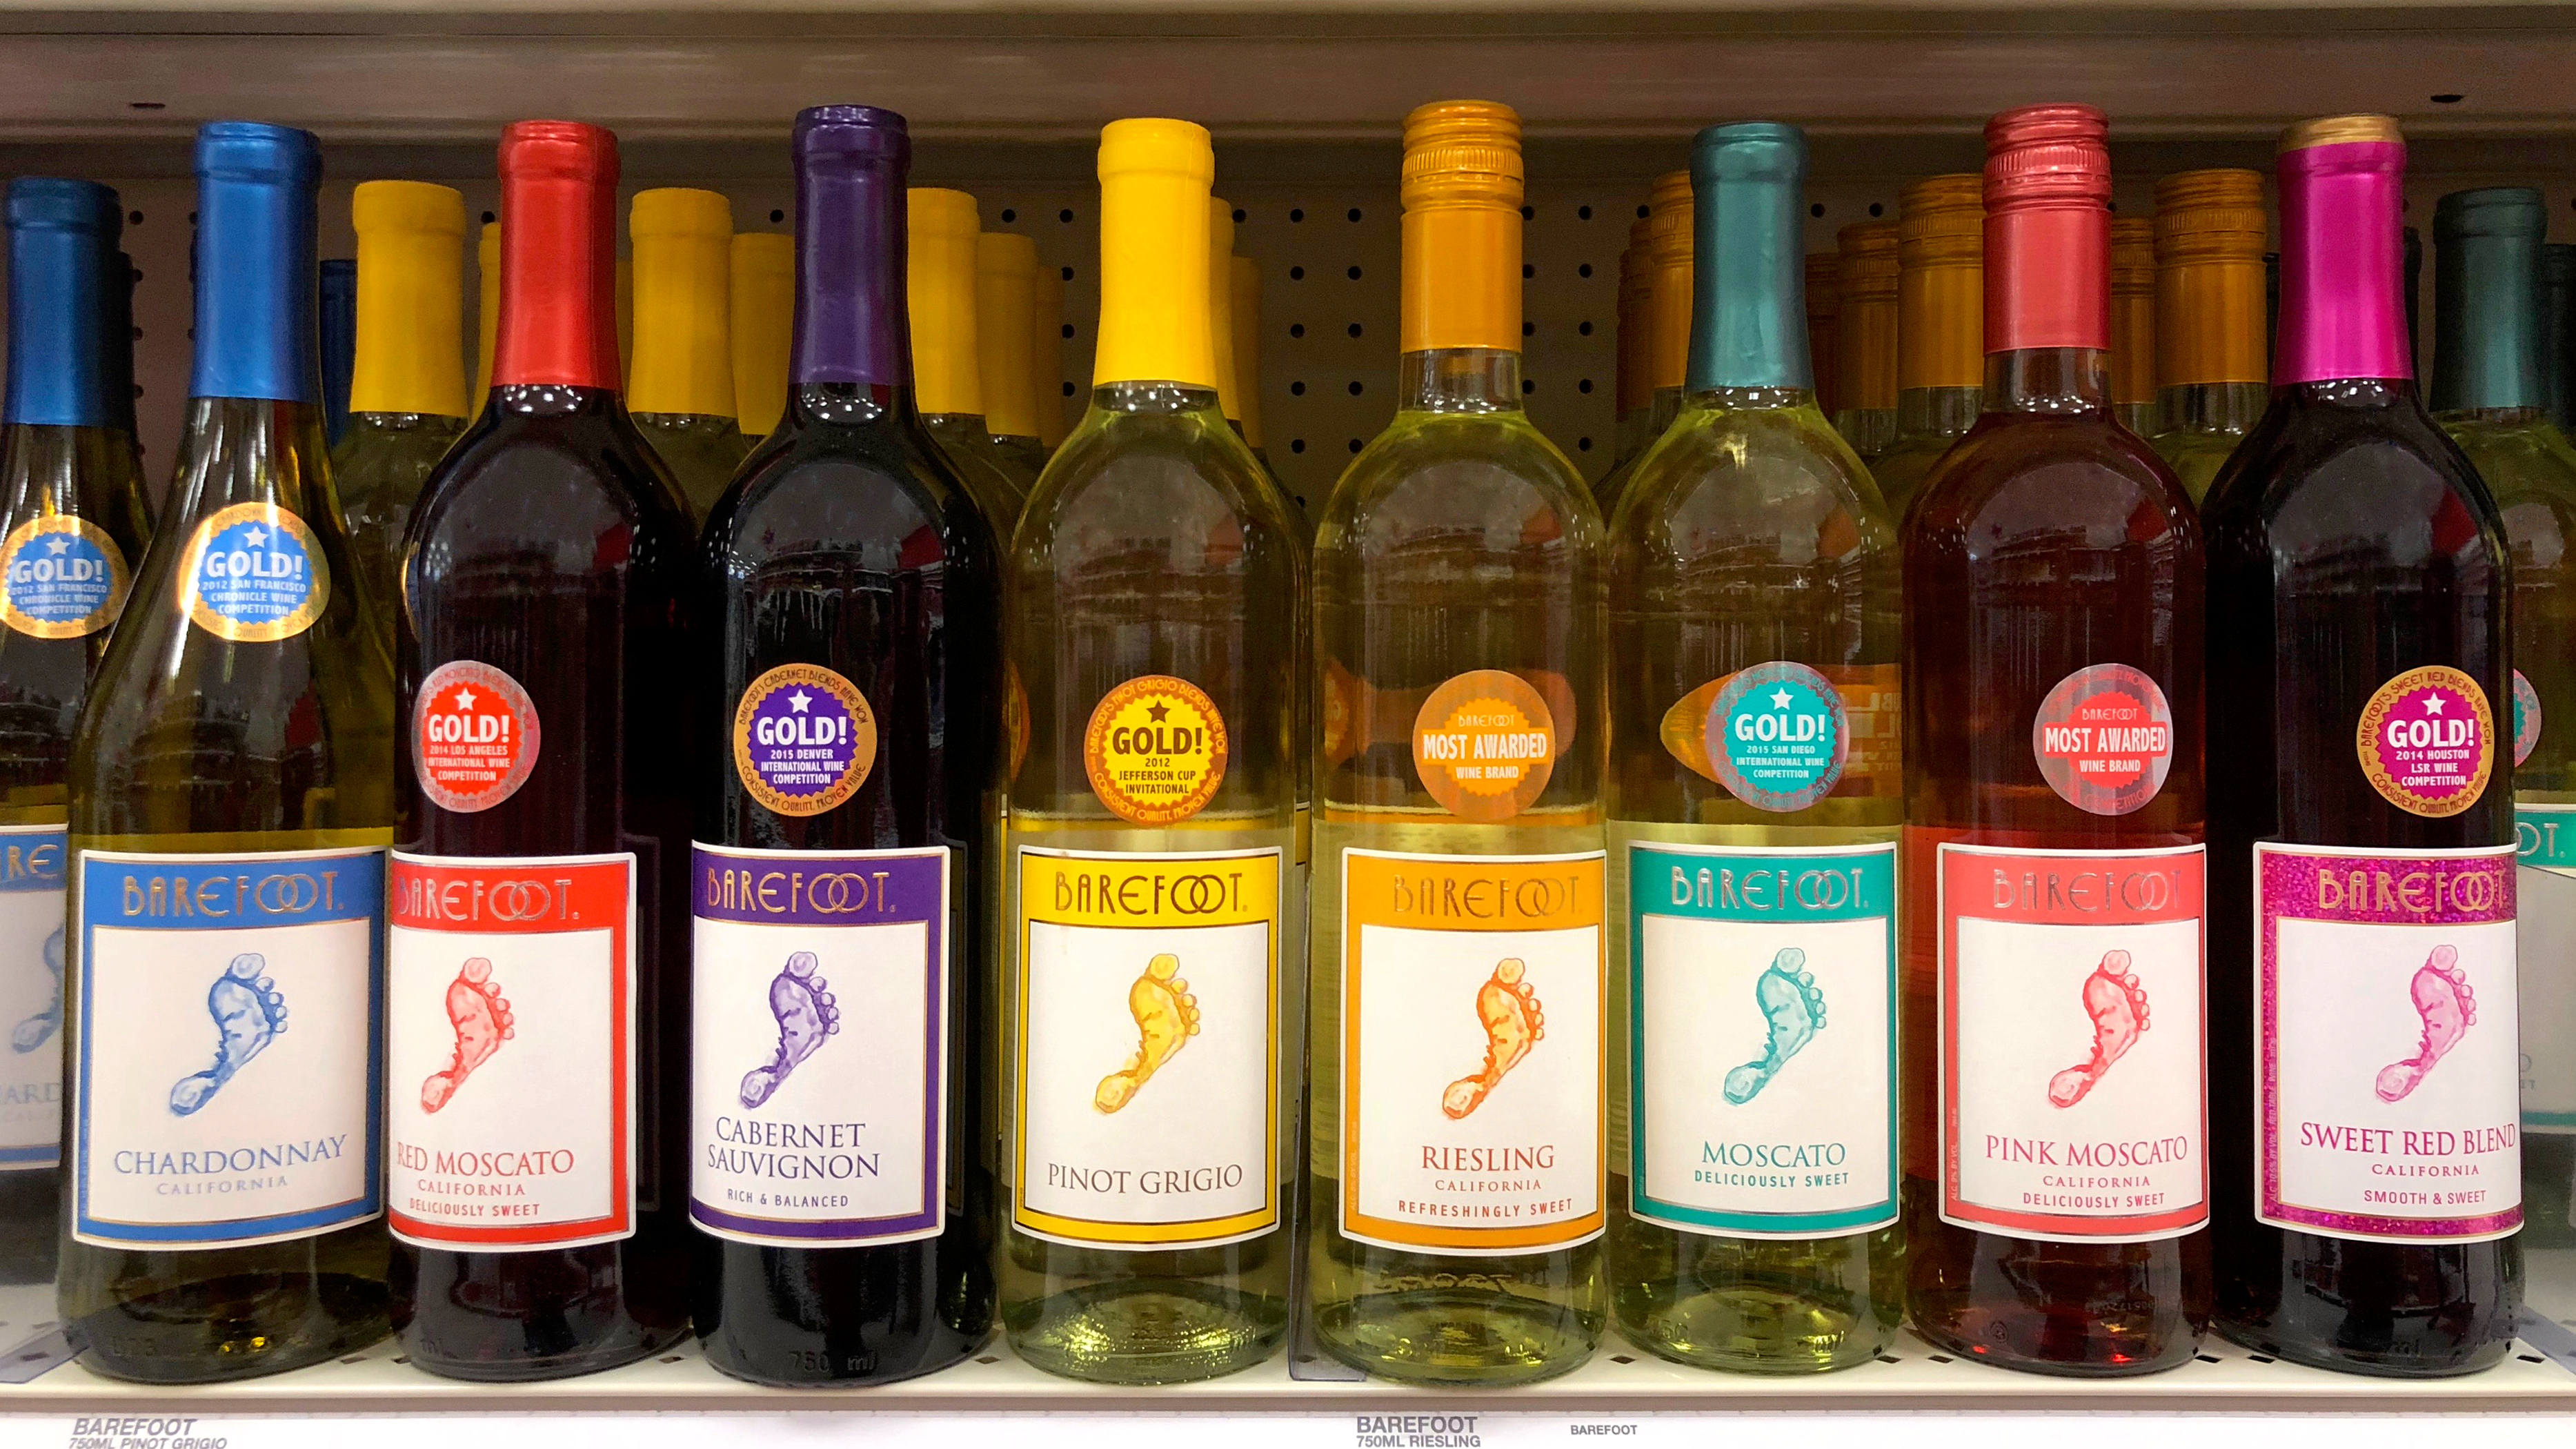 a row of wine bottles in different colors with labels that say barefoot